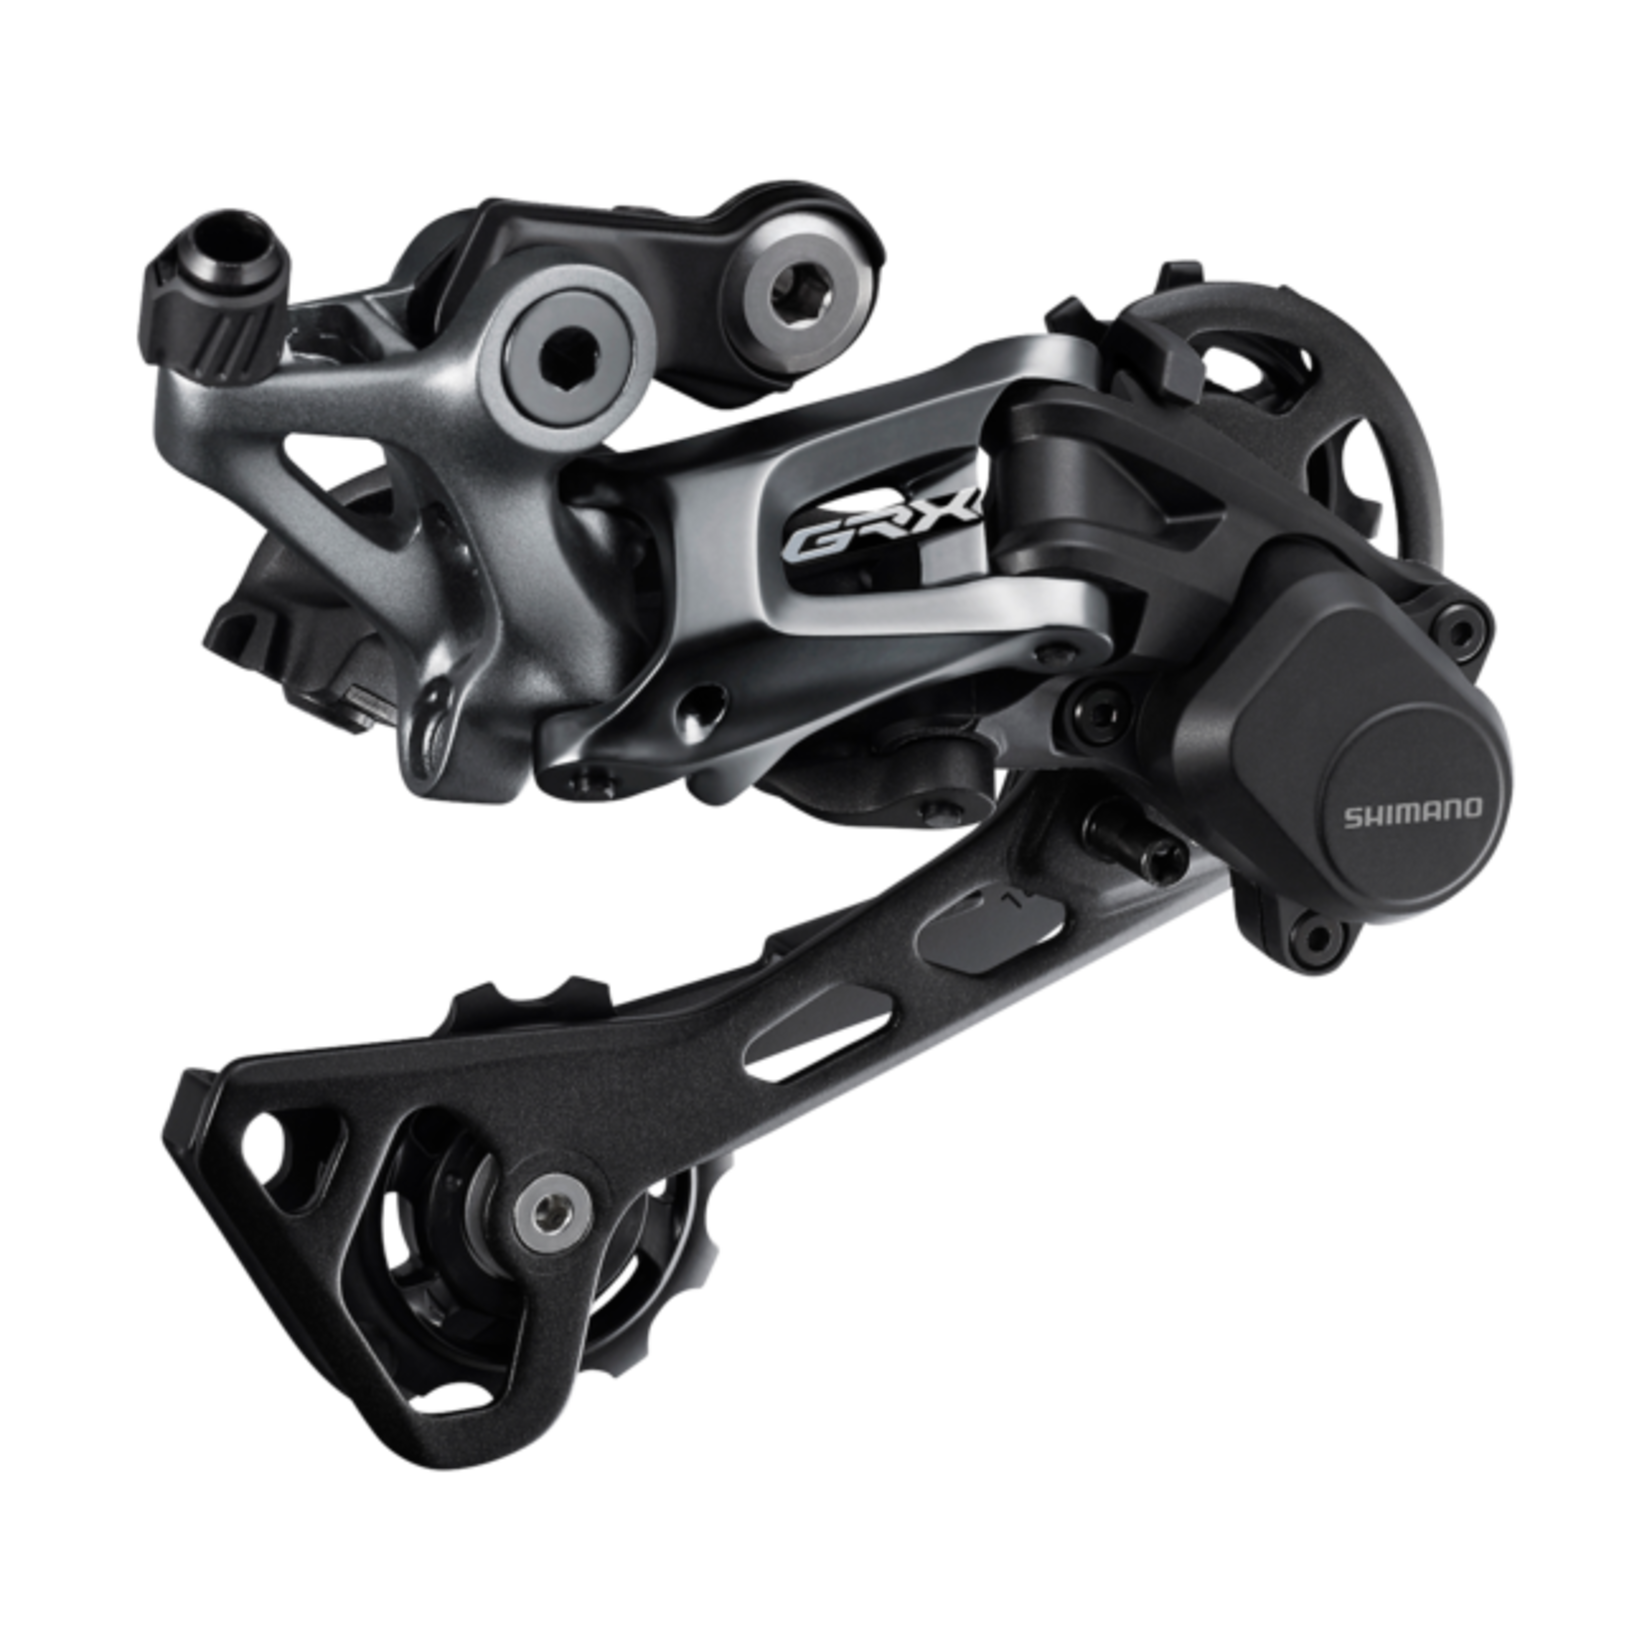 Shimano RD-RX812, GRX, 11-SPEED, SHADOW PLUS DESIGN, DIRECT ATTACHMENT, 1X11